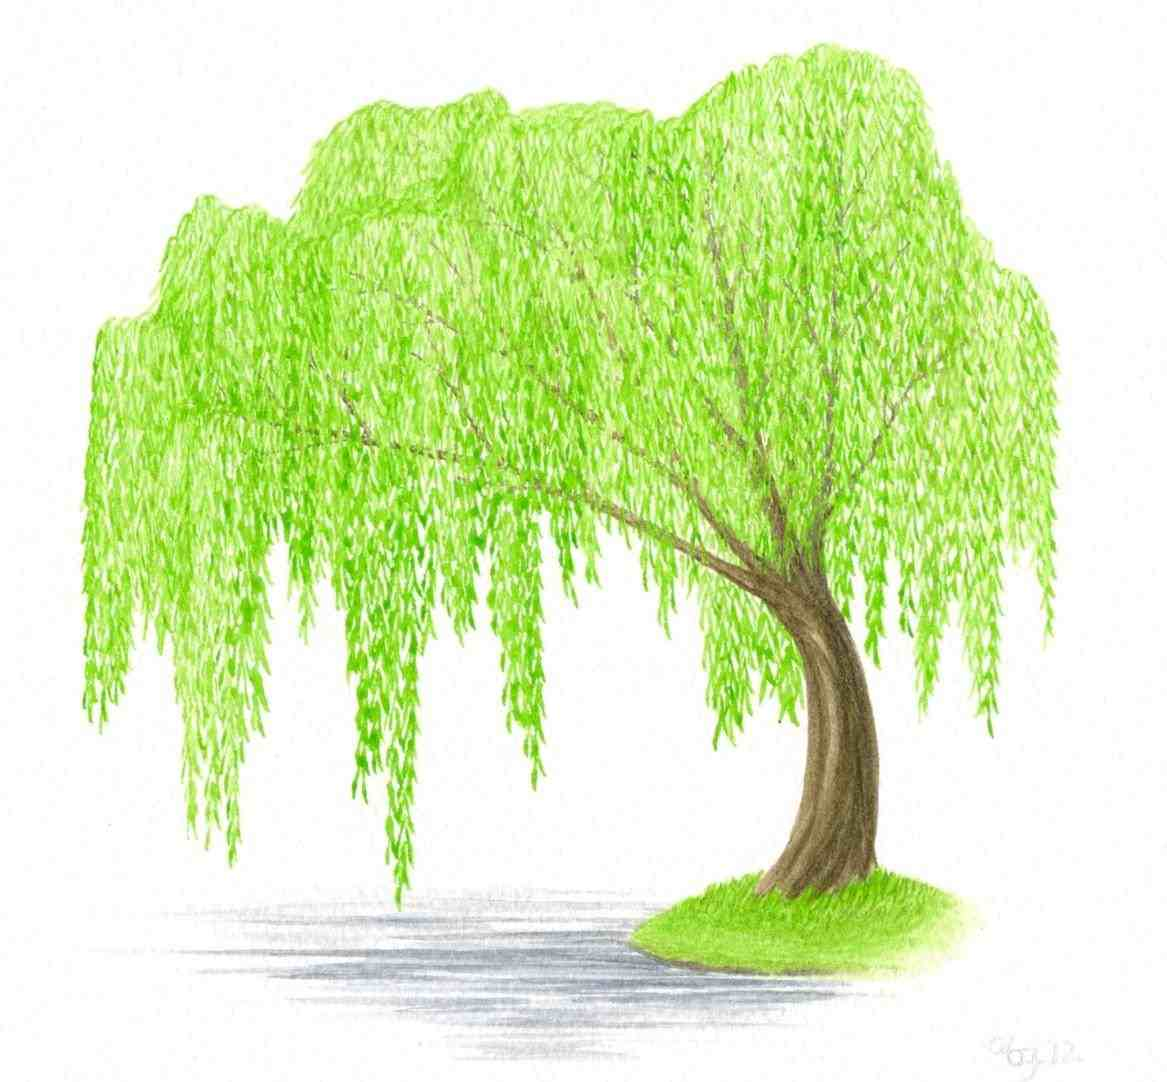 193 Willow Tree free clipart.